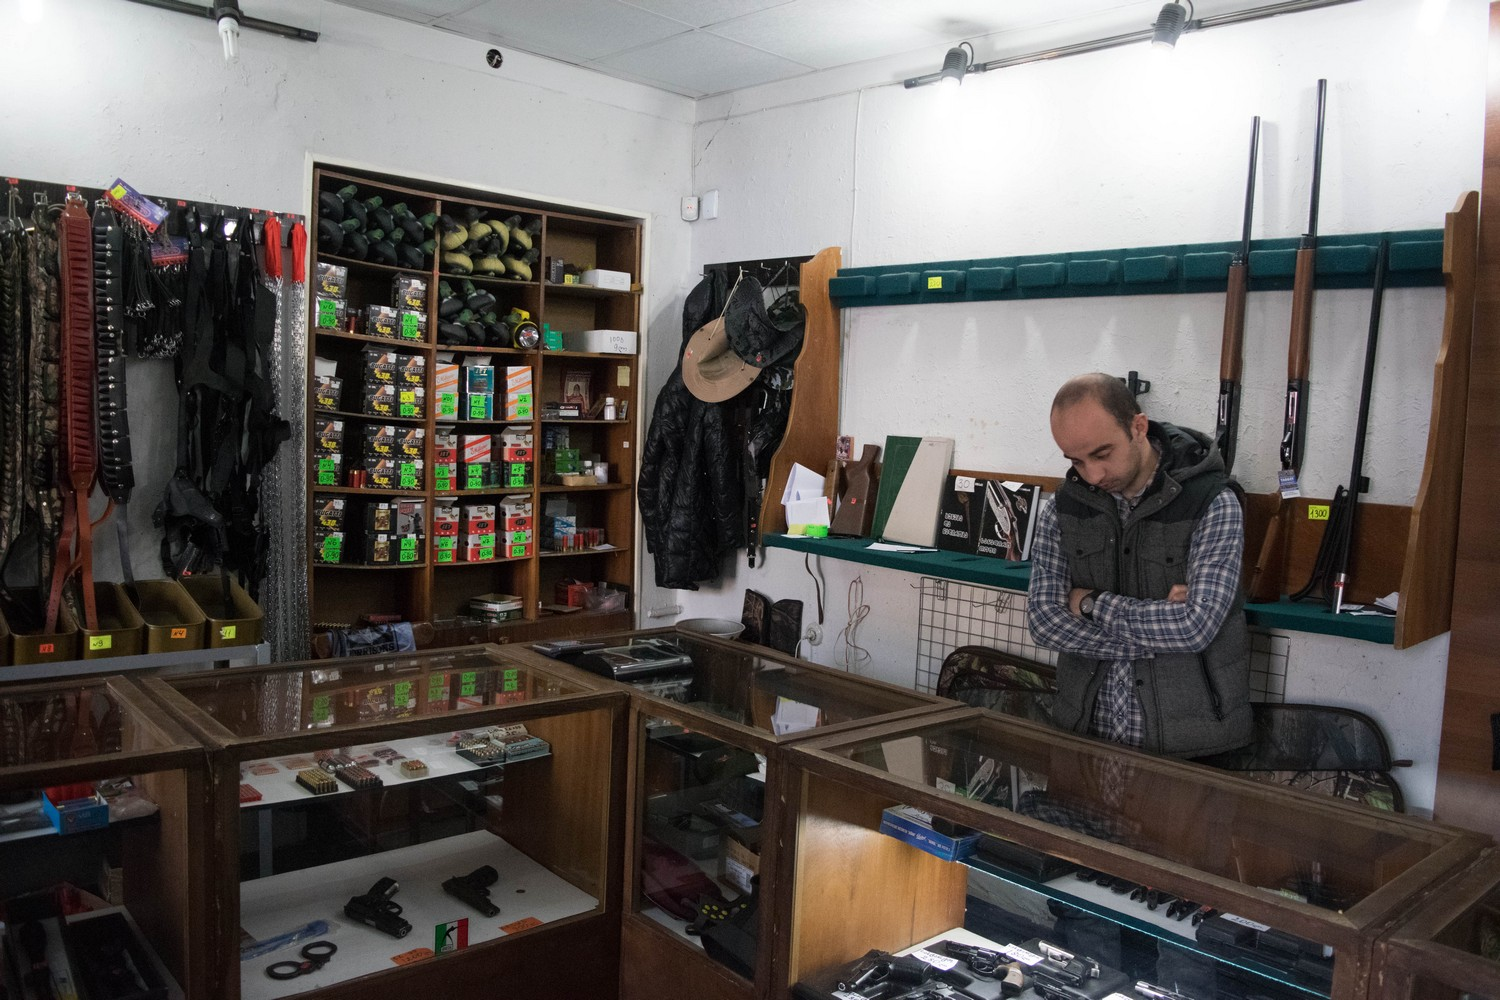 A hunting shop is also planning to move